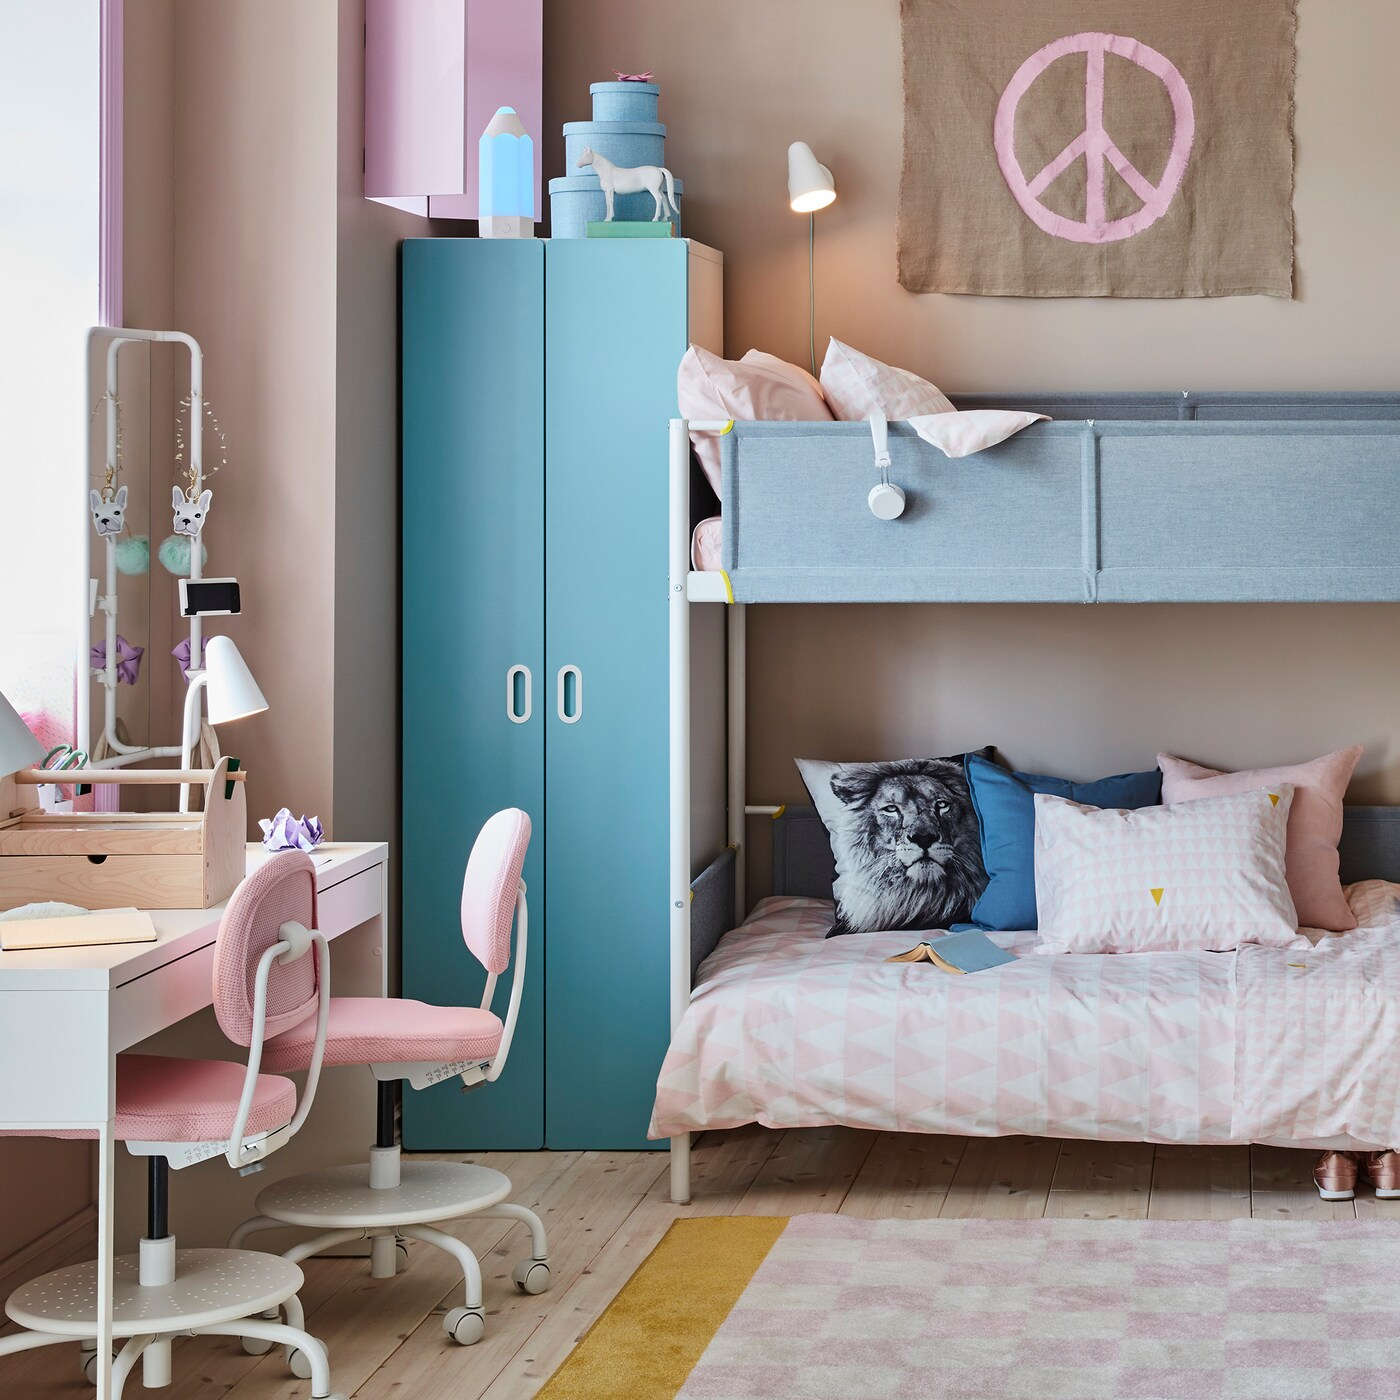 Bedroom Ideas Ikea: Kids Bedroom Inspiration - IKEA